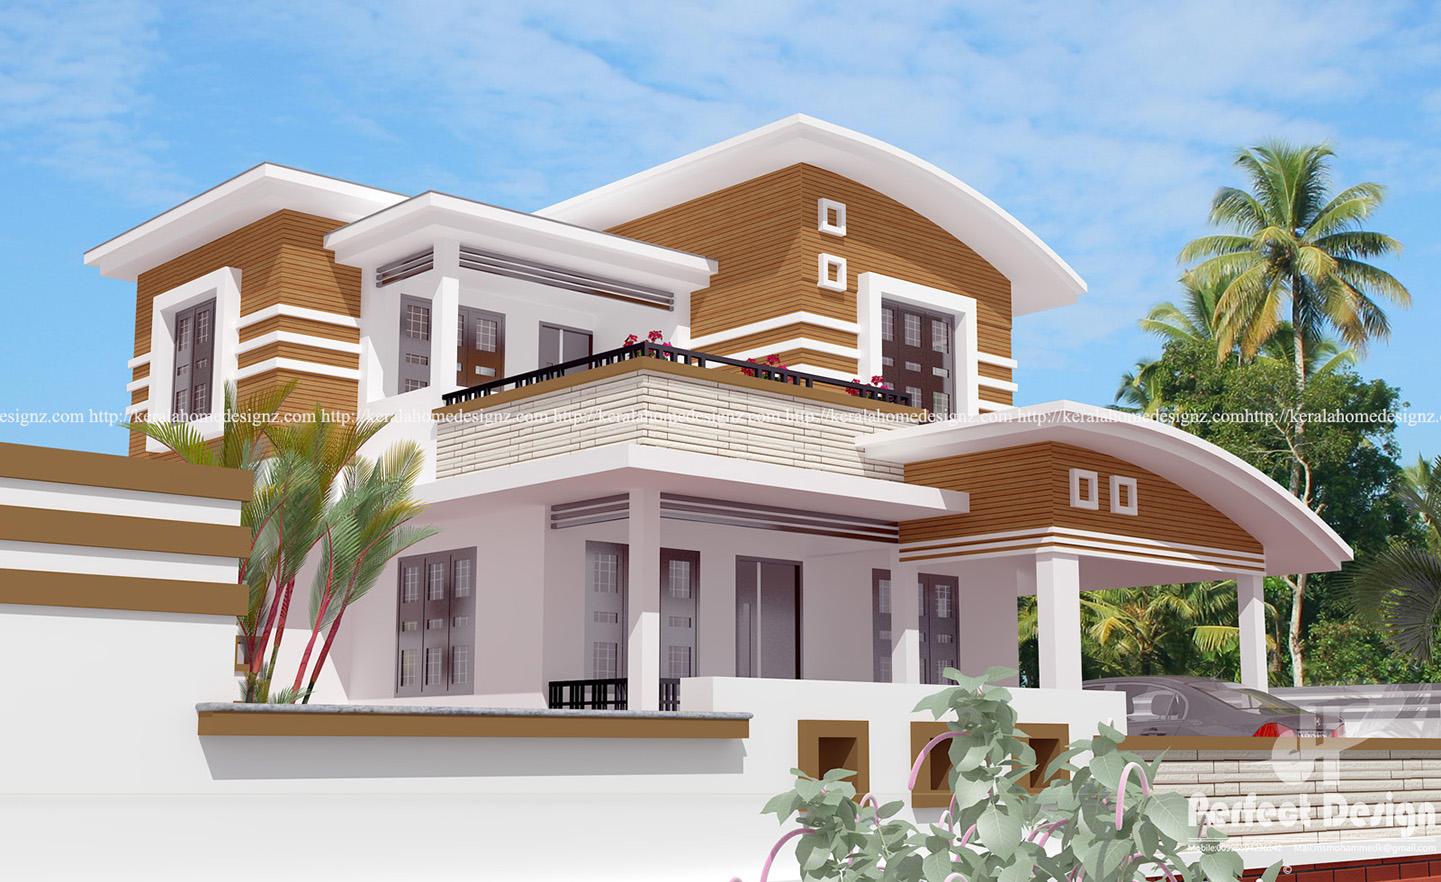 4 bedroom curved roof mix contemporary home kerala home for Curved roof house plans